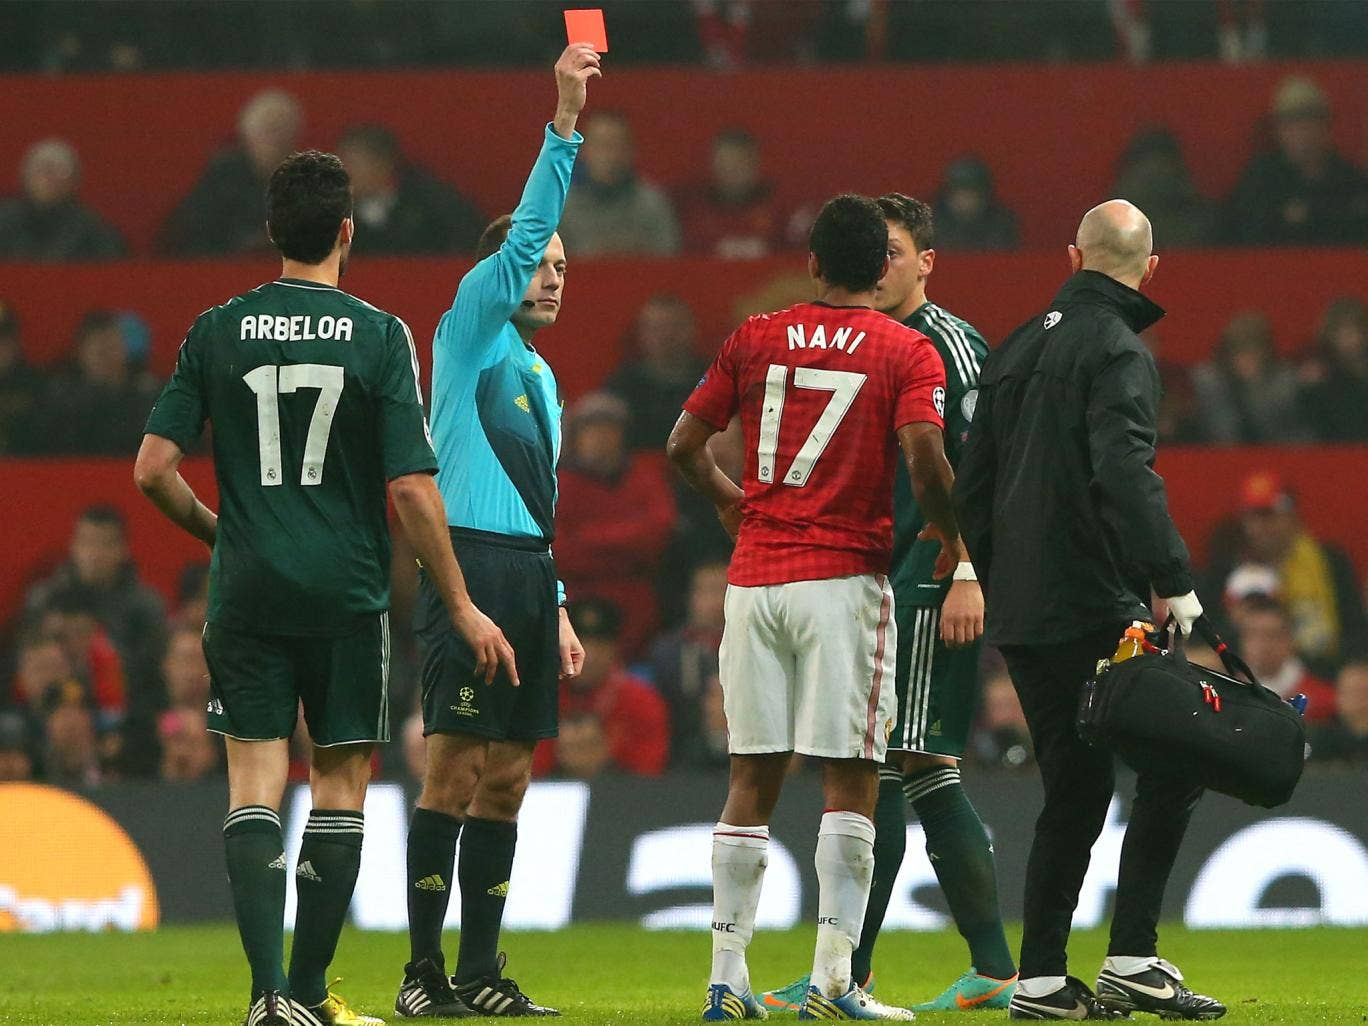 Nani is given his marching orders